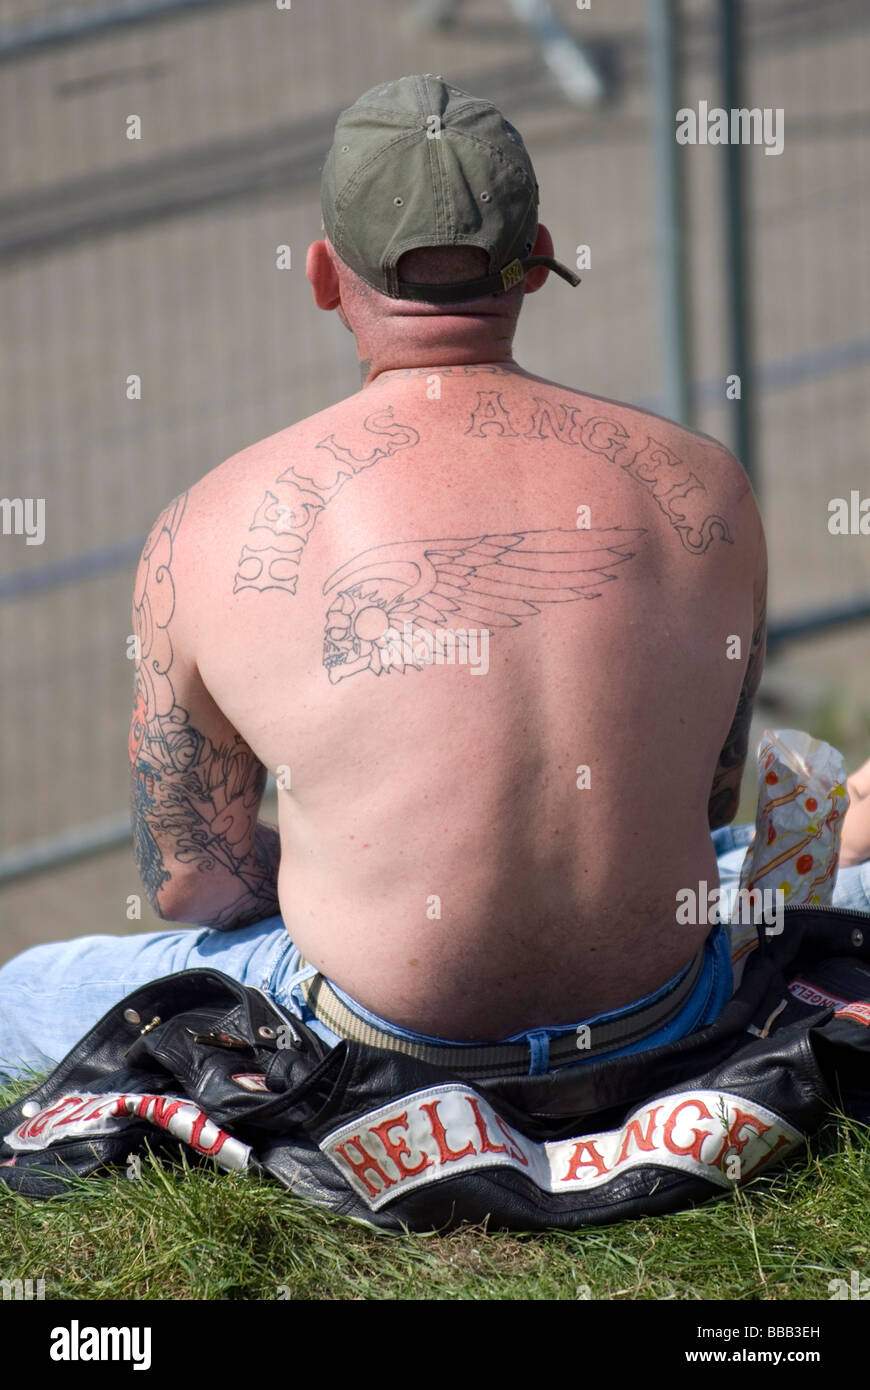 Biker Gang Tattoo Stock Photos & Biker Gang Tattoo Stock Images - Alamy